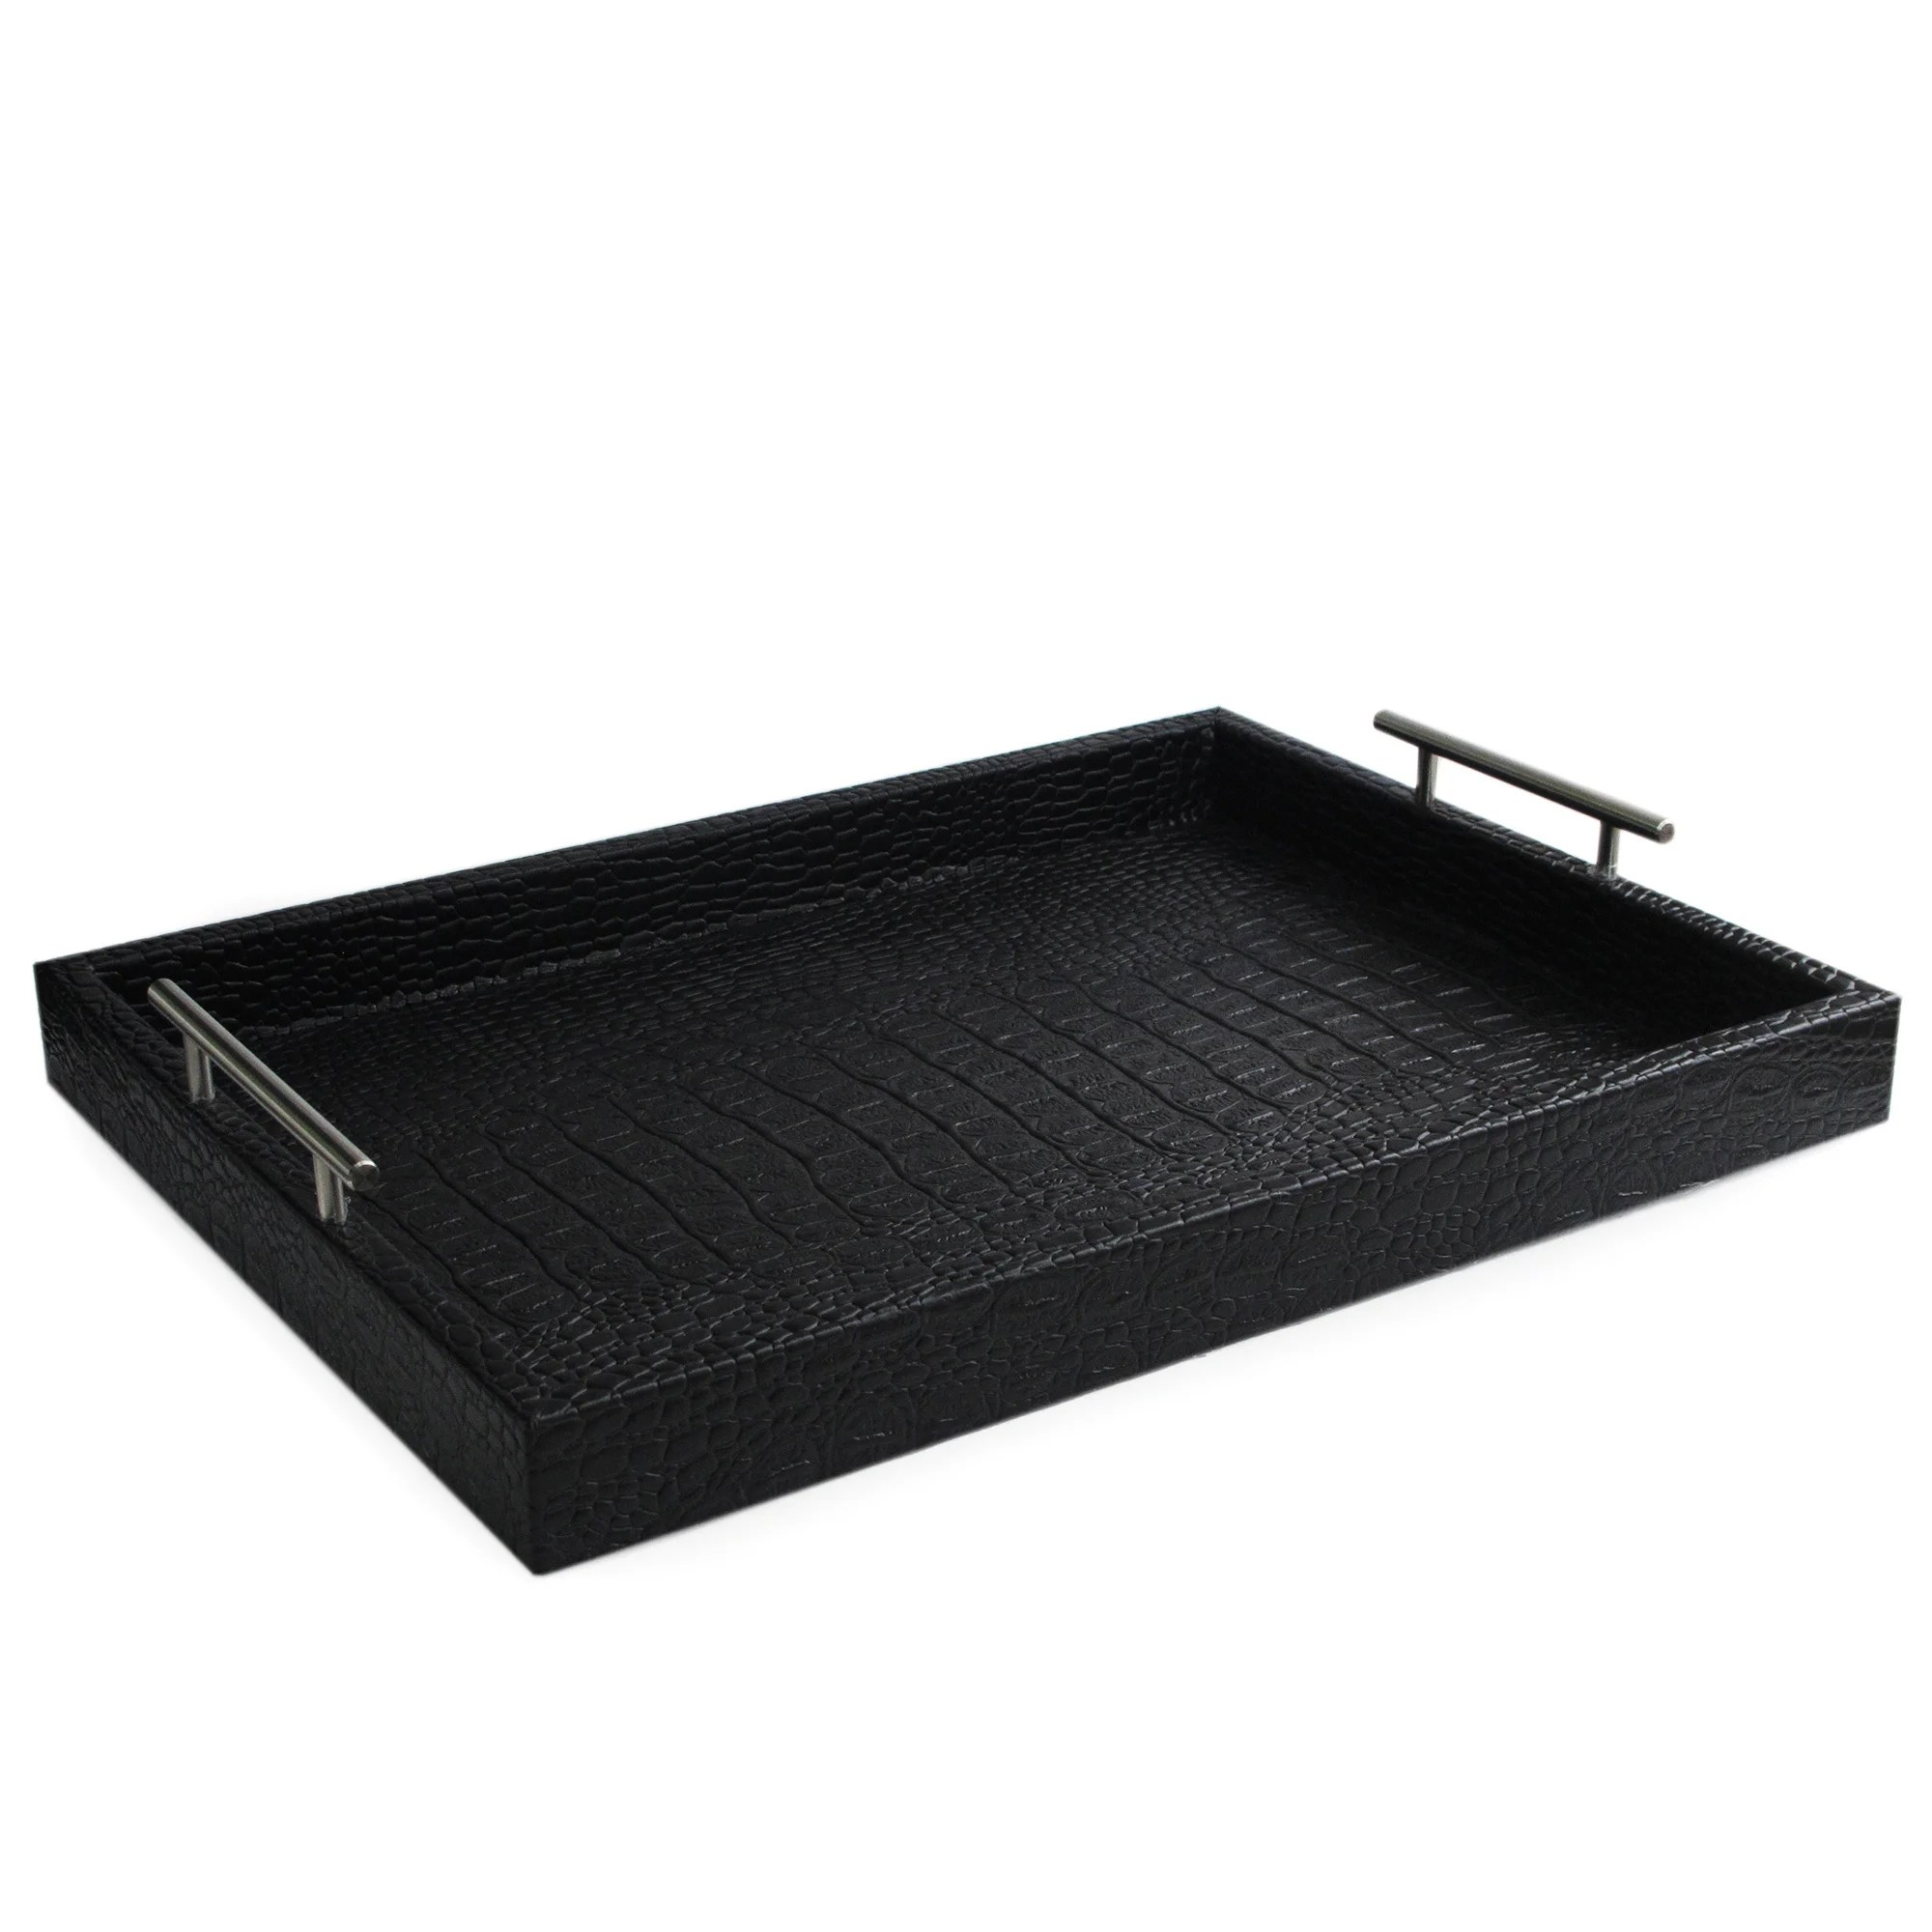 Black Serving Tray Black Leather Alligator Tray With Handles